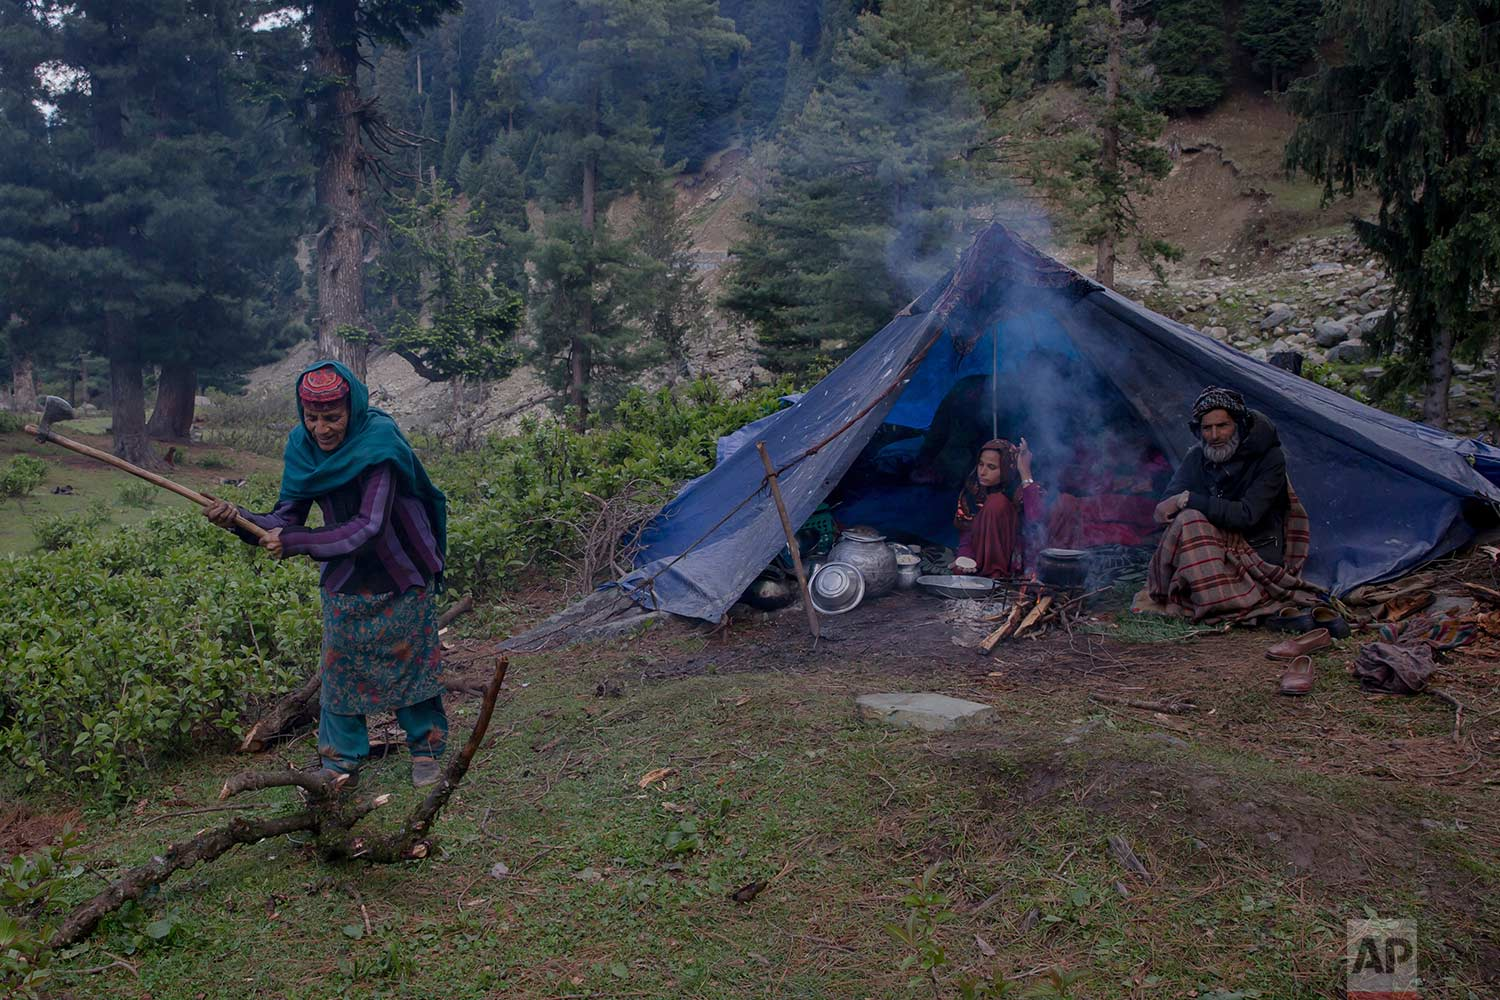 In this May 9, 2018, photo, Rashem Jan, a Kashmiri nomadic Bakarwal woman cuts a tree trunk for cooking food outside her tent at a temporary camp in Dubgan, 70 kilometers (43 miles) south of Srinagar, Indian controlled Kashmir. (AP Photo/Dar Yasin)